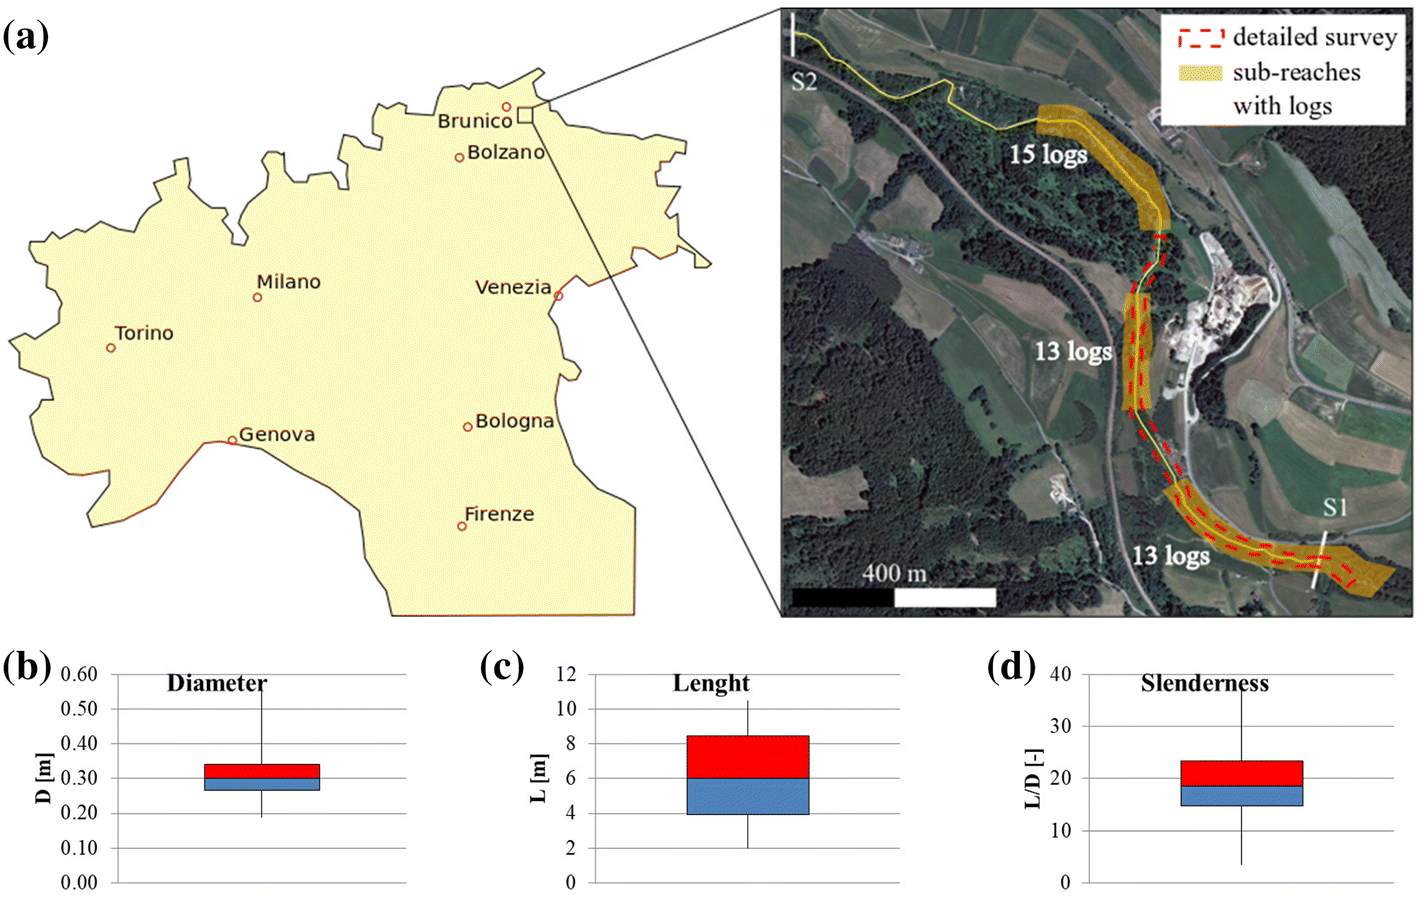 Numerical modelling of uncongested wood transport in the